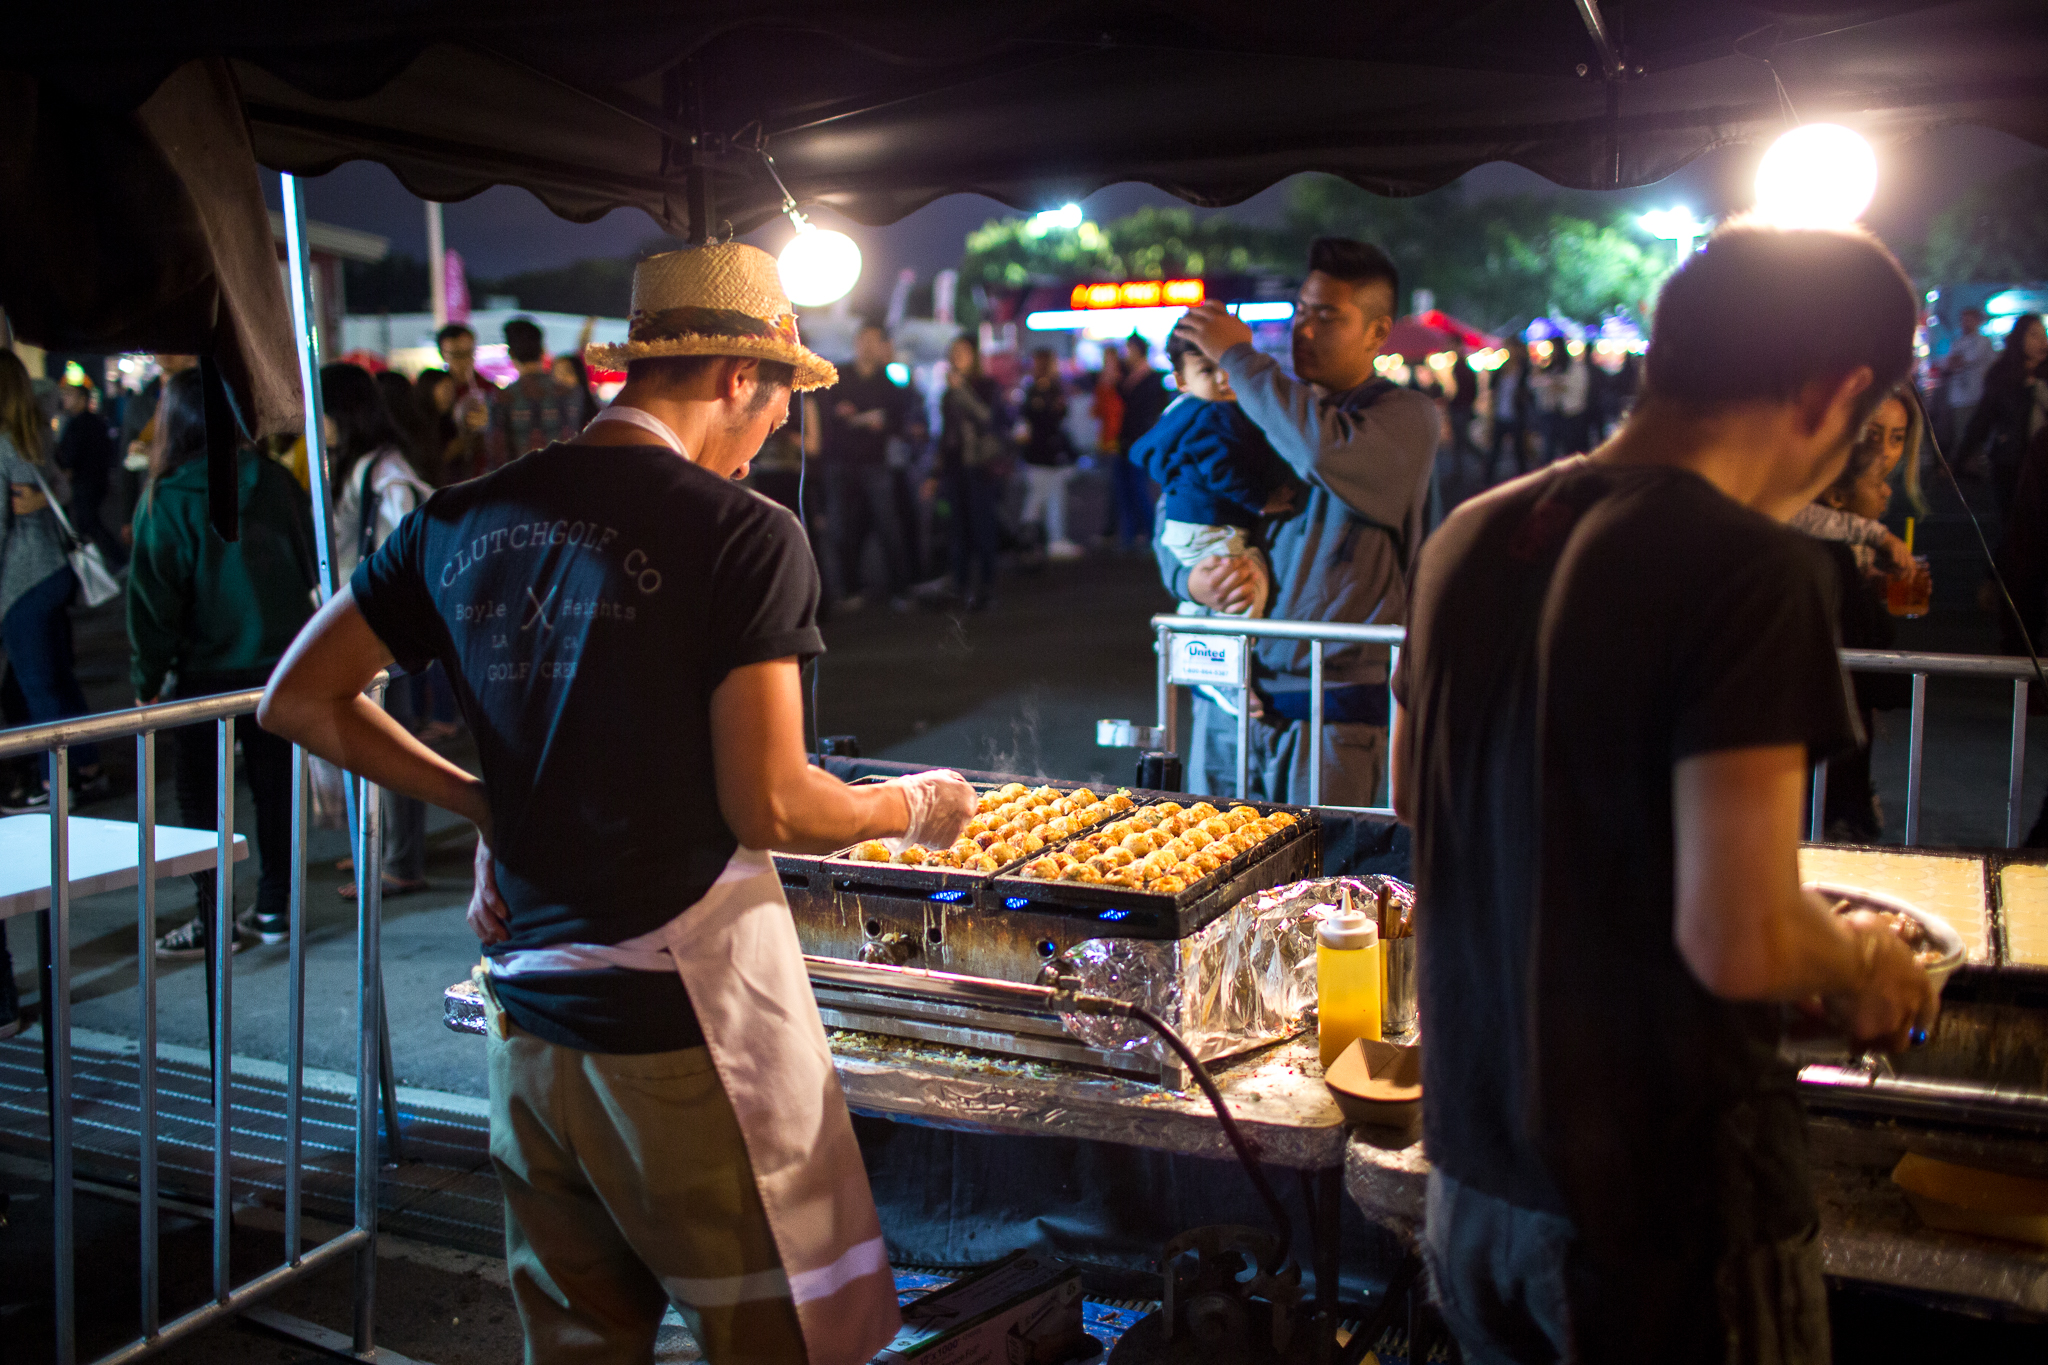 Asian-inspired night markets filling lots of stomachs in Southern California - JUNE 10, 2016 | LA TIMES